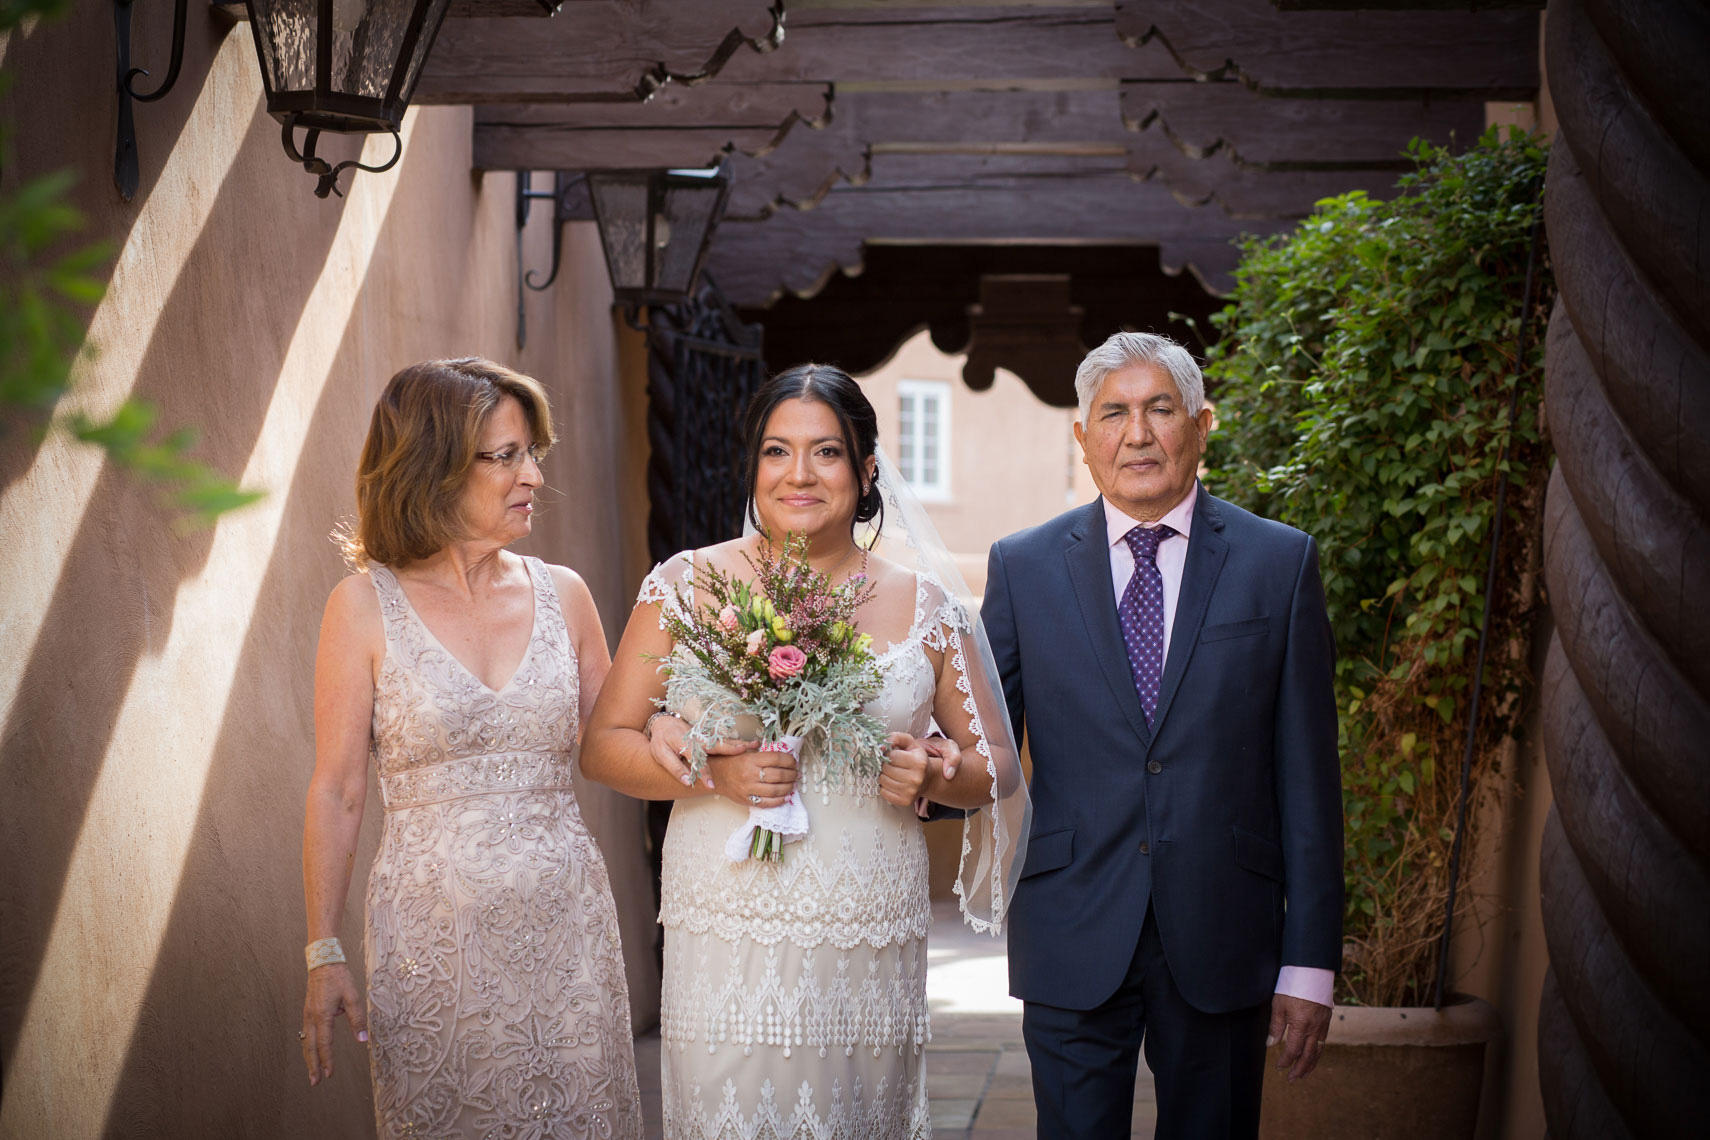 La Fonda Wedding Ceremony, bride walks down aisle with mother and blind father